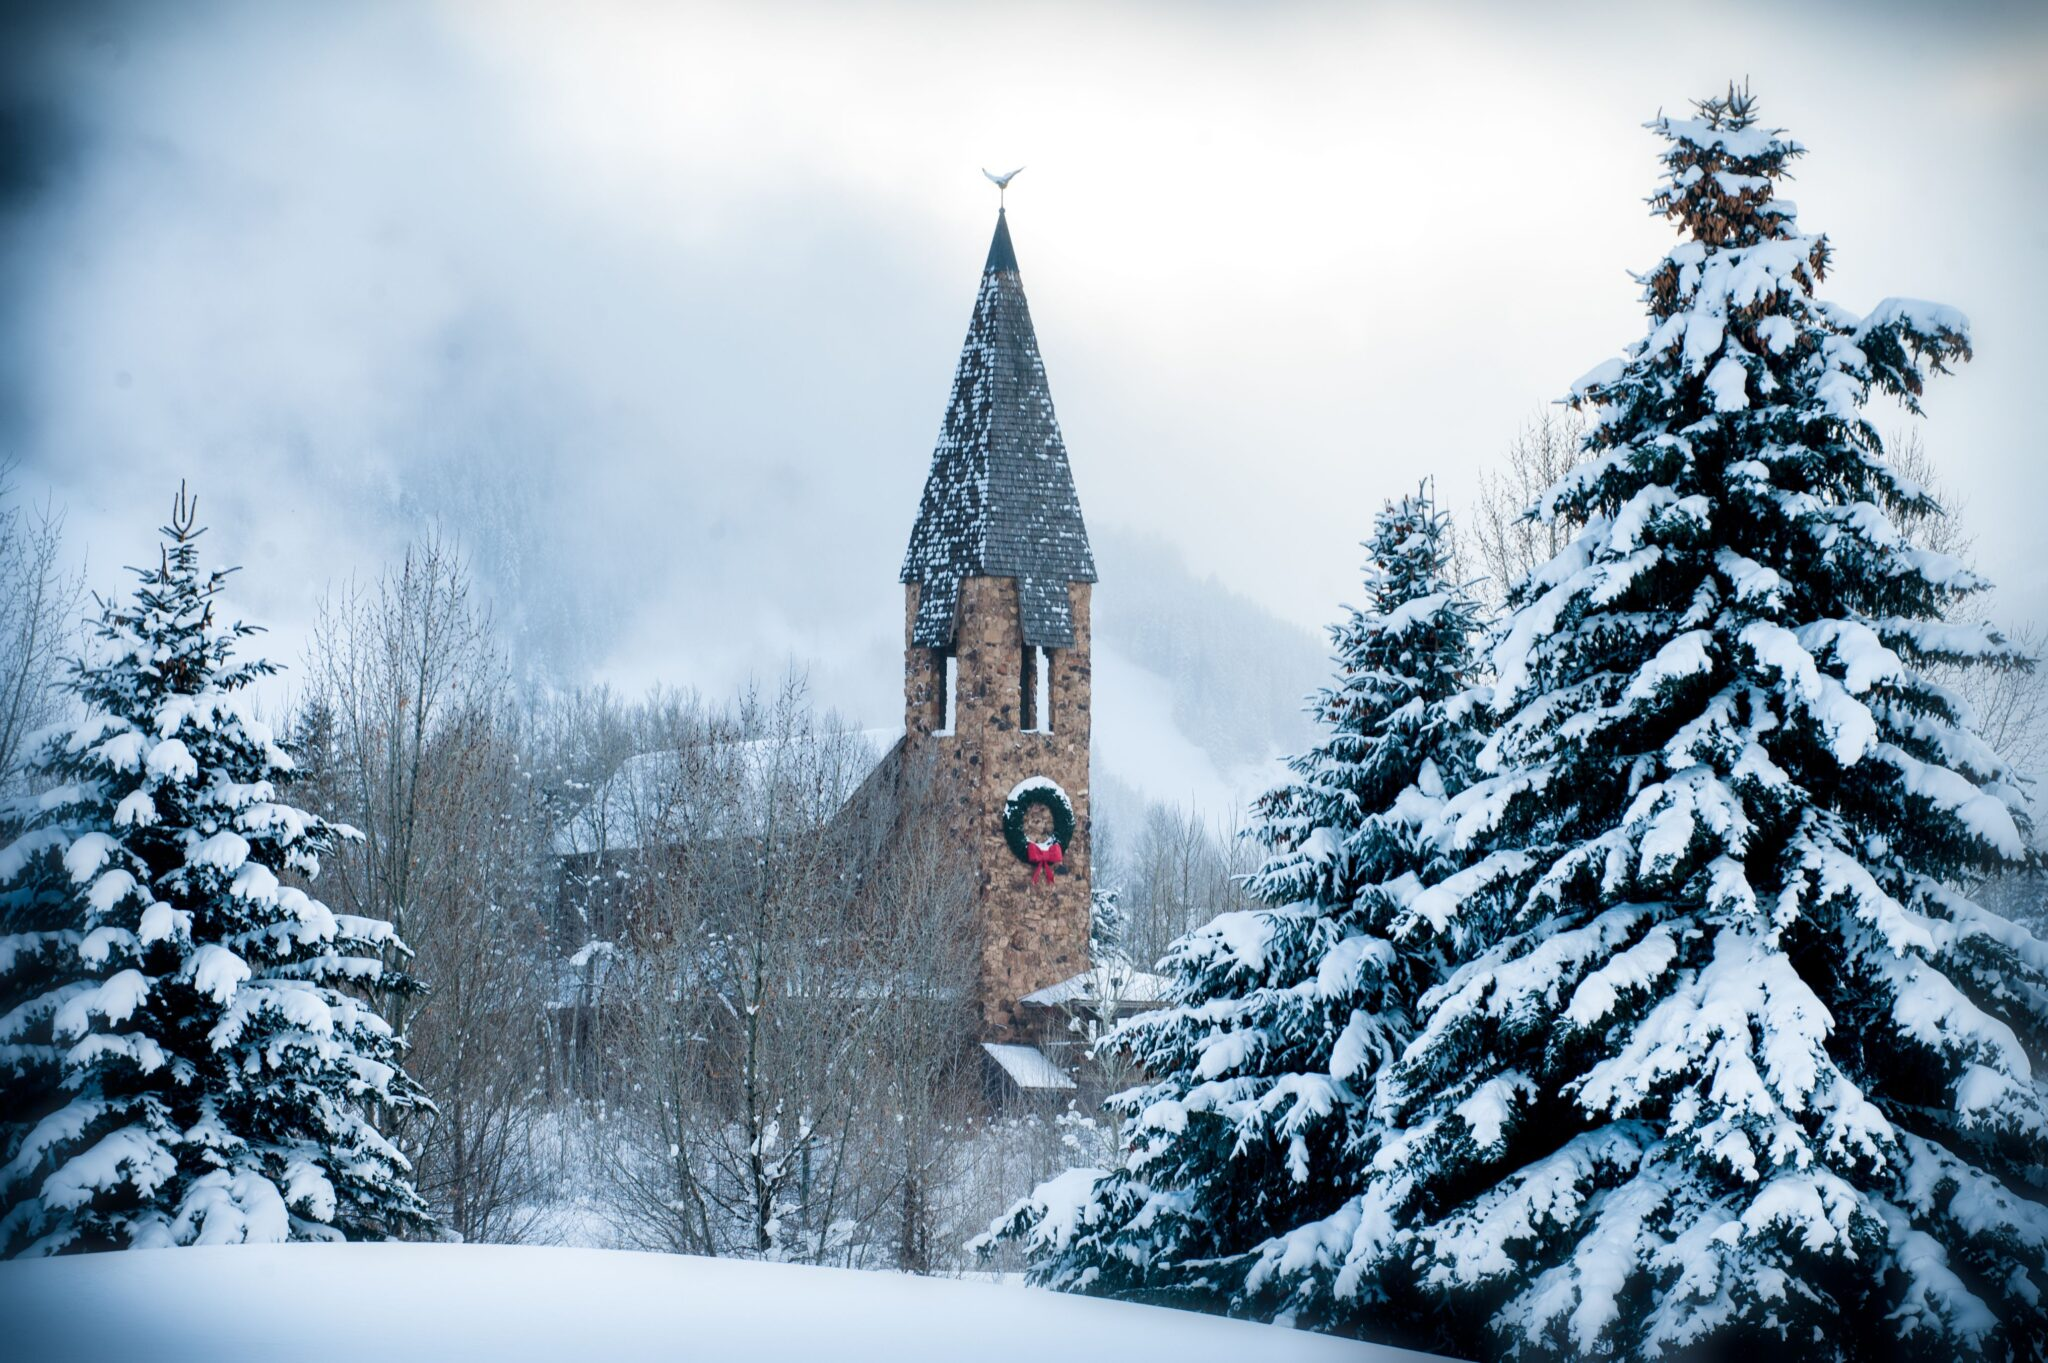 An Aspen Holiday Shopping Guide - #2